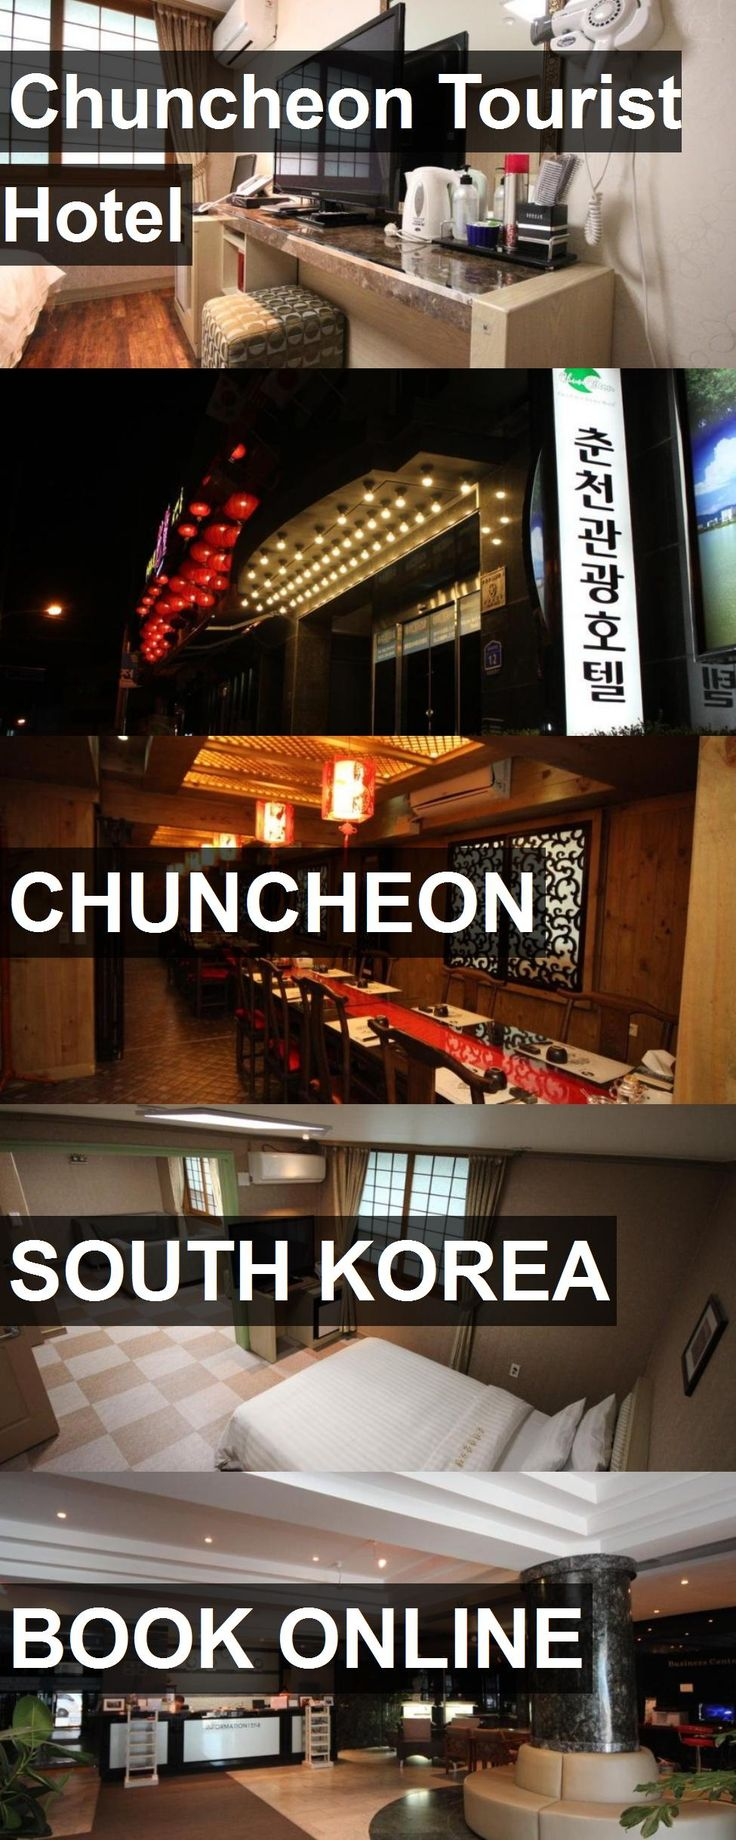 Chuncheon Tourist Hotel in Chuncheon, South Korea. For more information, photos, reviews and best prices please follow the link. #SouthKorea #Chuncheon #travel #vacation #hotel